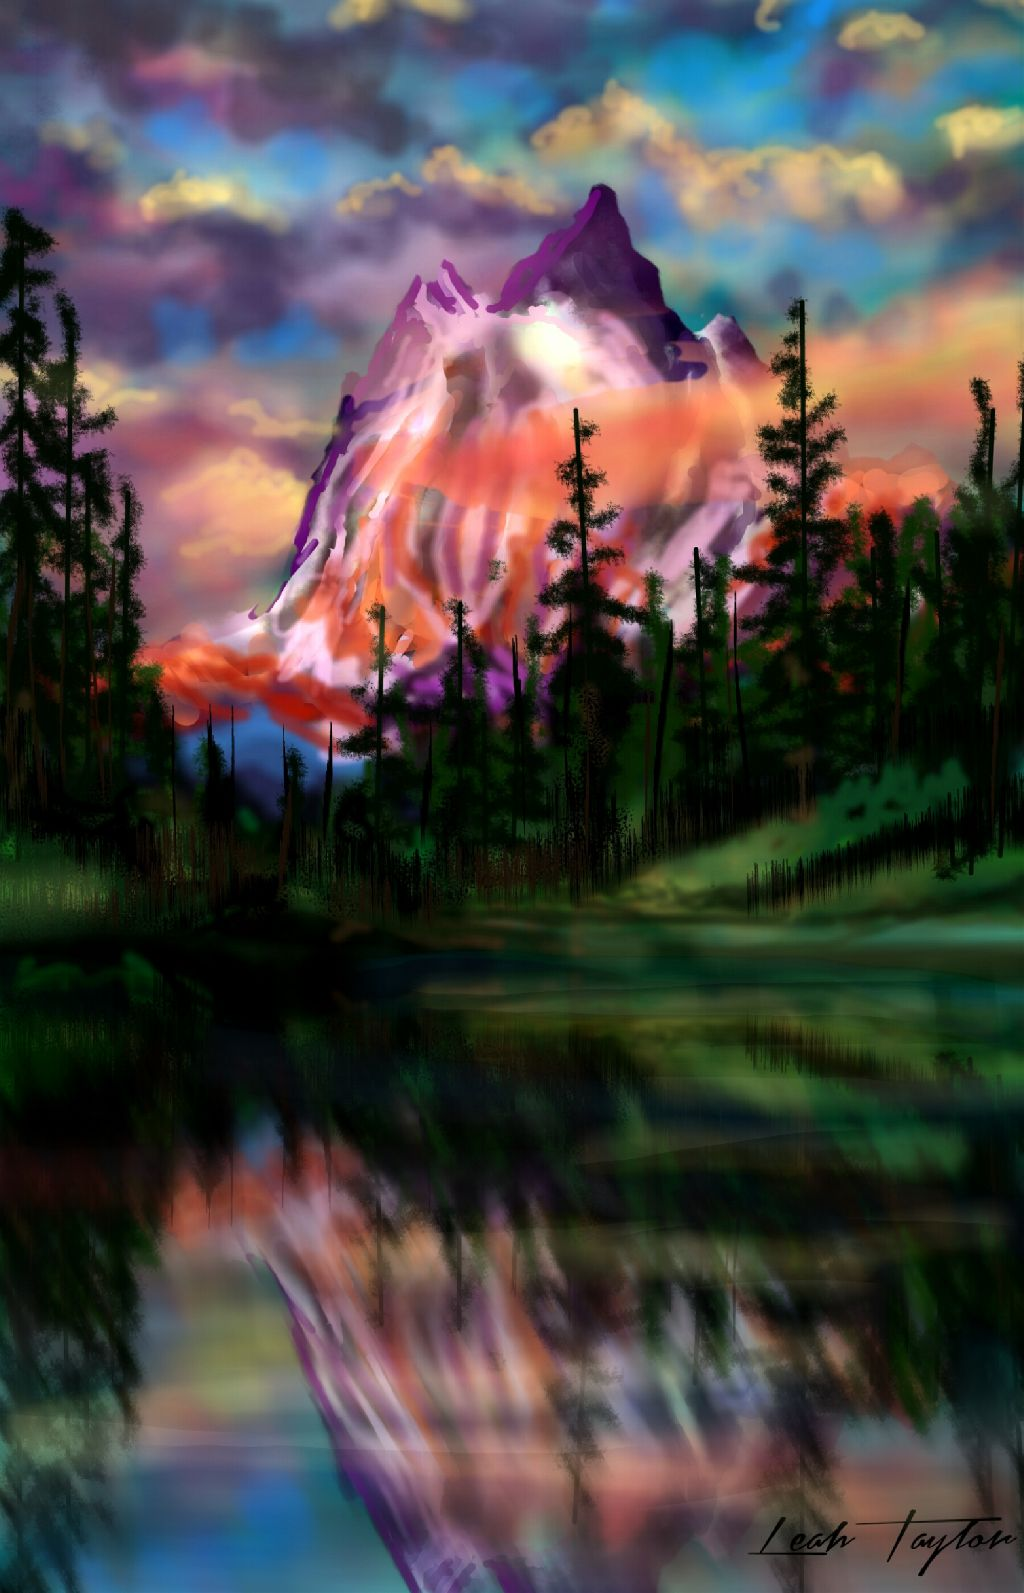 Dcmountains majestic see the drawing video www youtube com watch